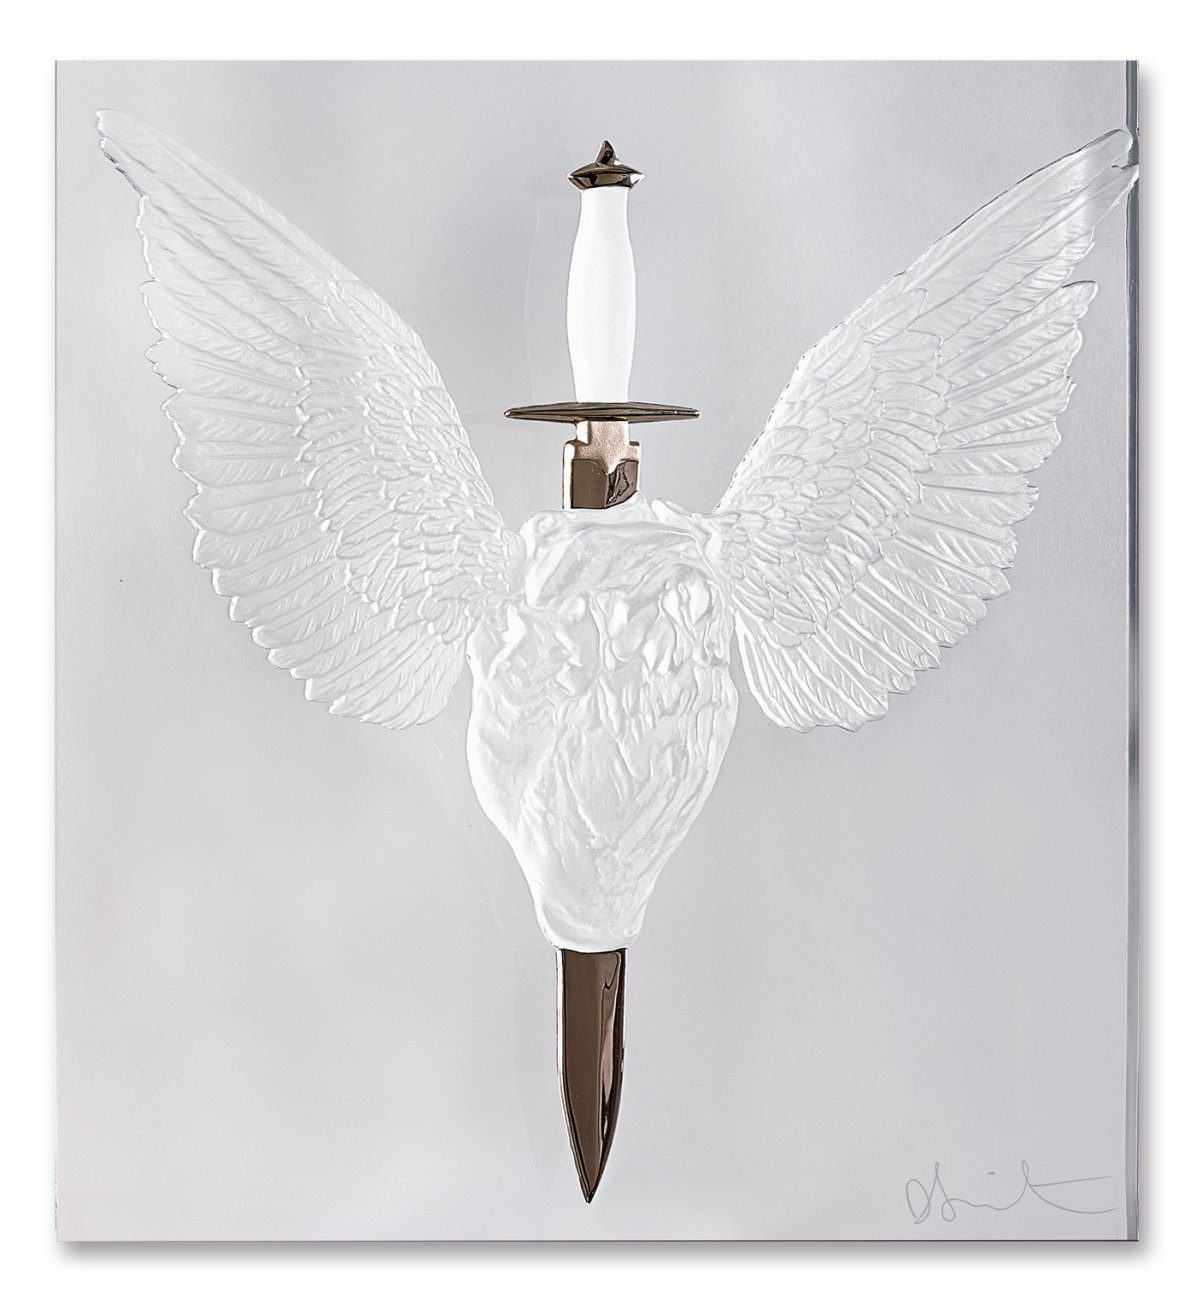 HD-88059205-ETERNAL-PRAYER-Clear-and-Platinum-Photo-François-Fernandez-©-Damien-Hirst-Science-Ltd-and-Lalique